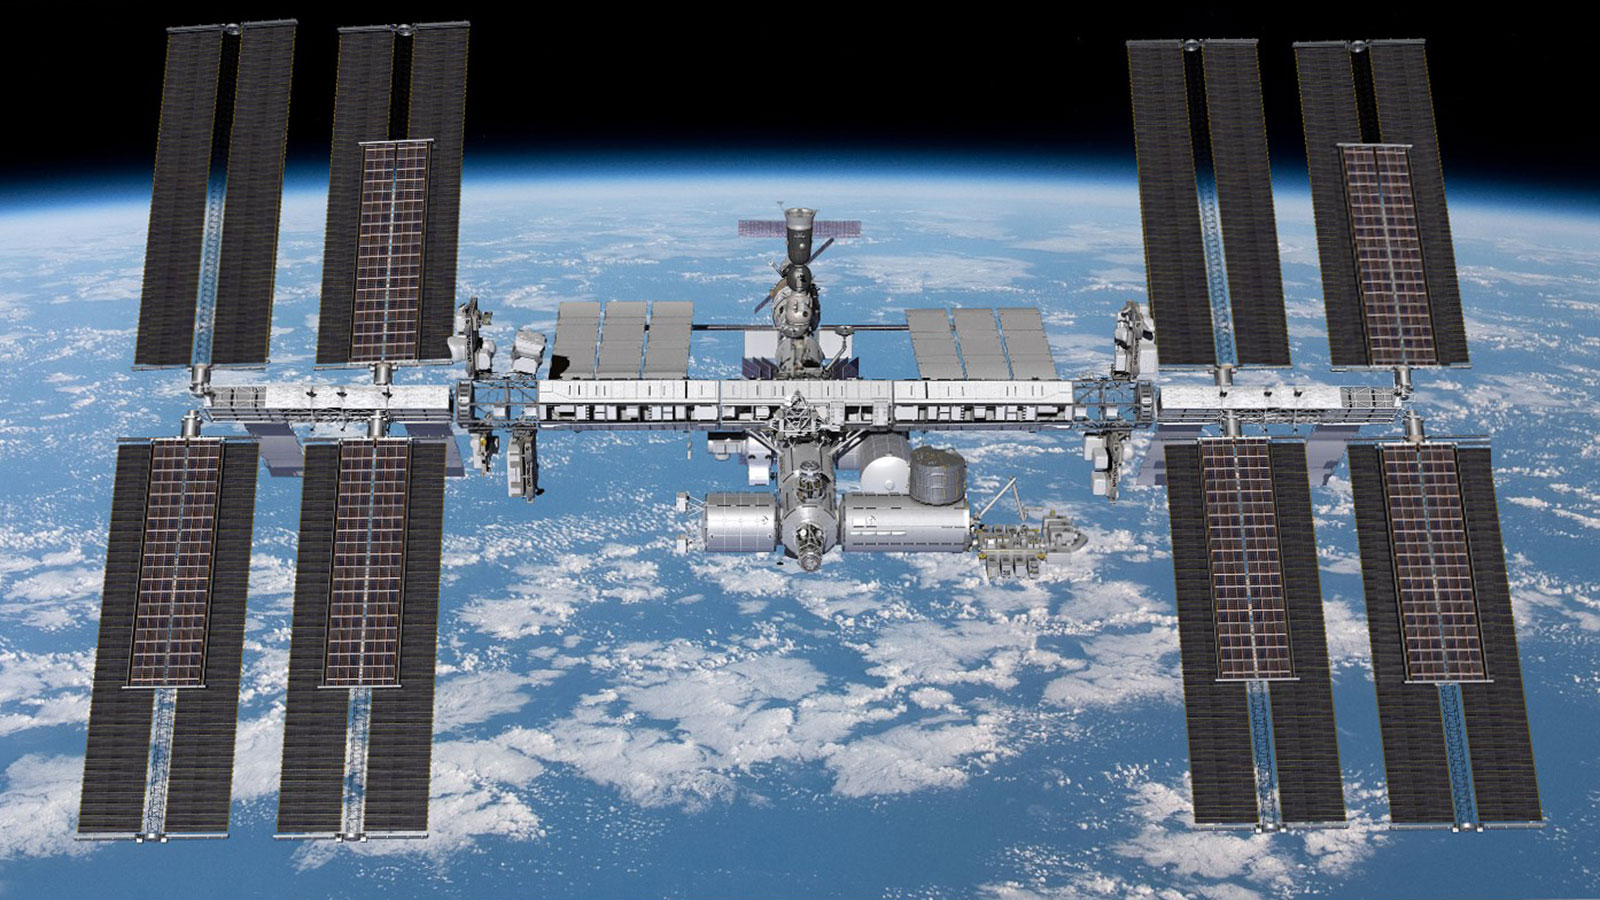 Technical problems prevent astronauts from installing new solar panels on space station